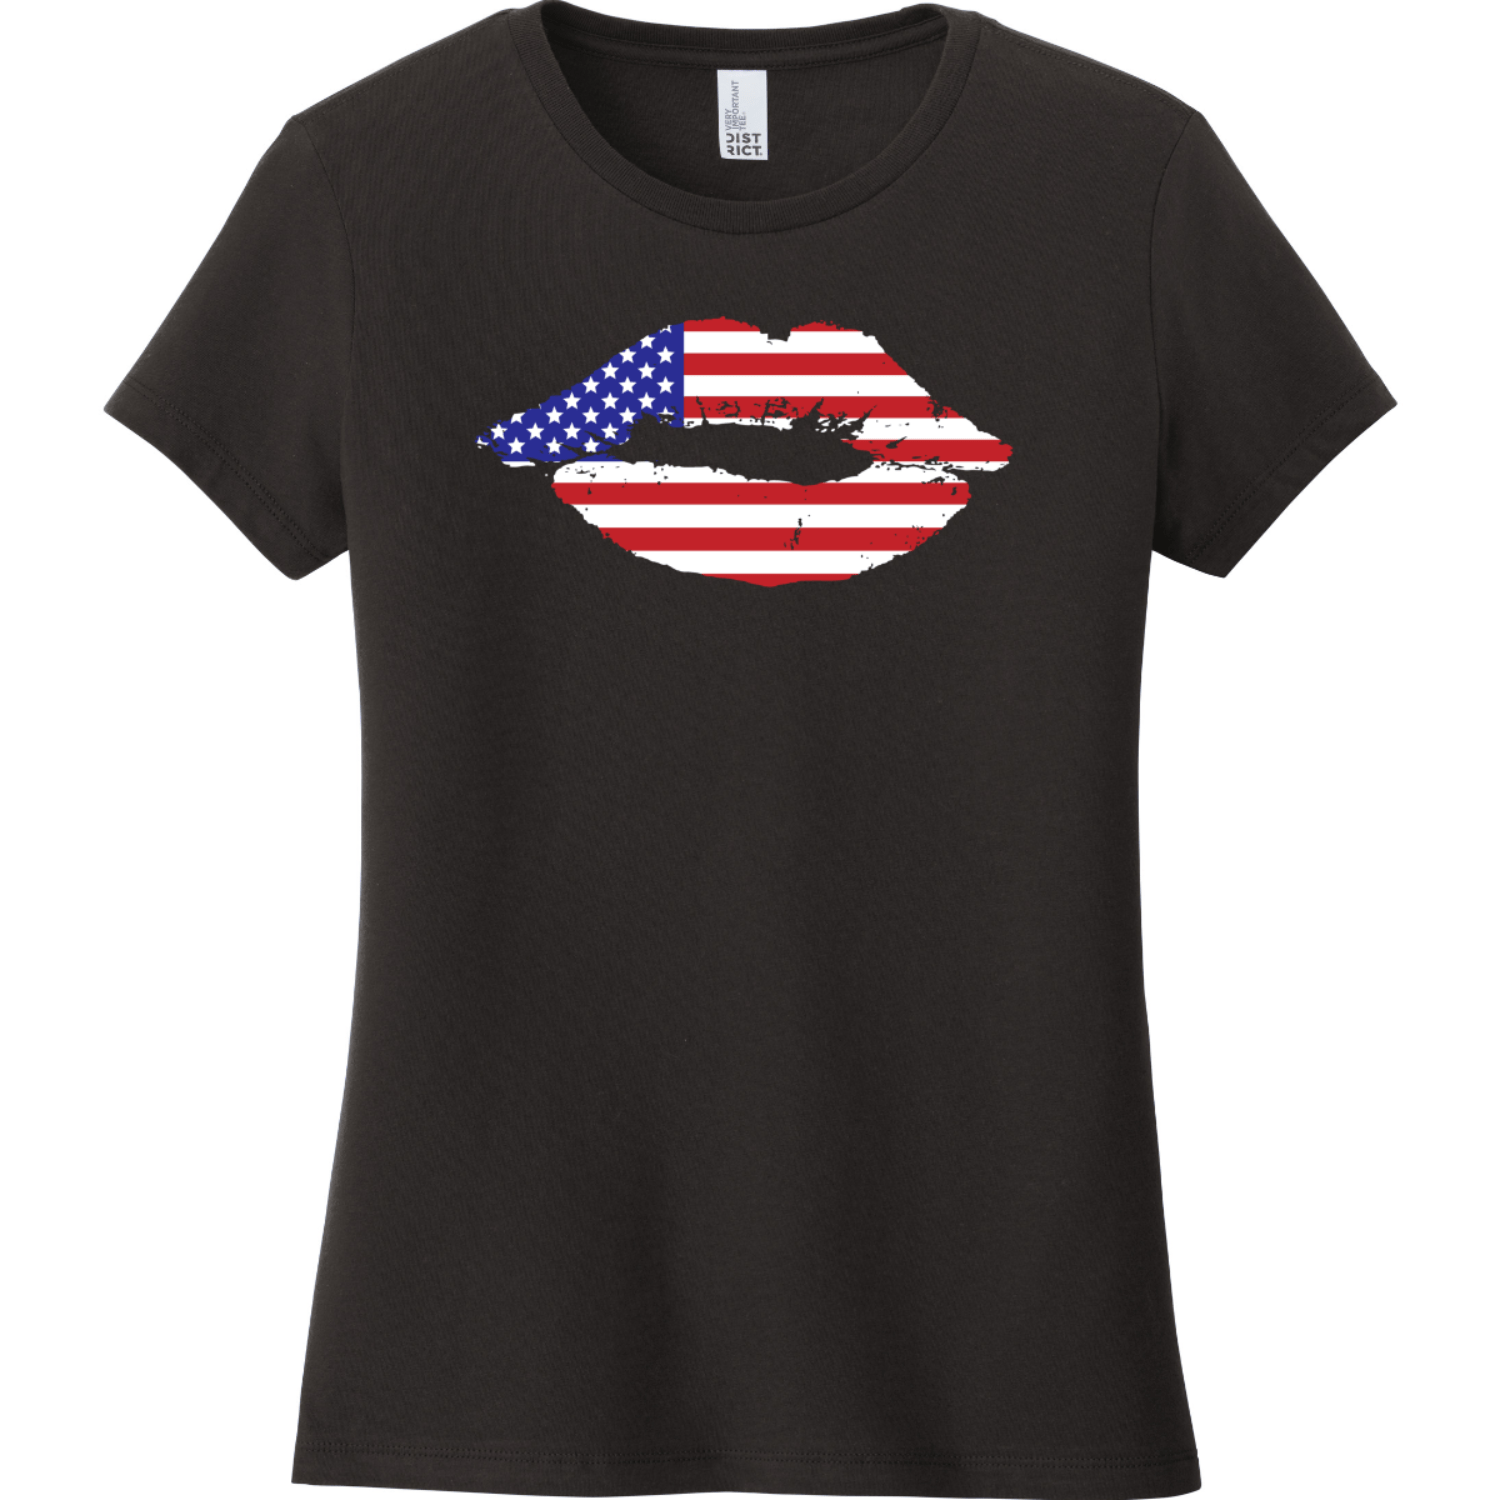 American Flag Lips T-Shirt For Women Black District Women's Very Important Tee DT6002